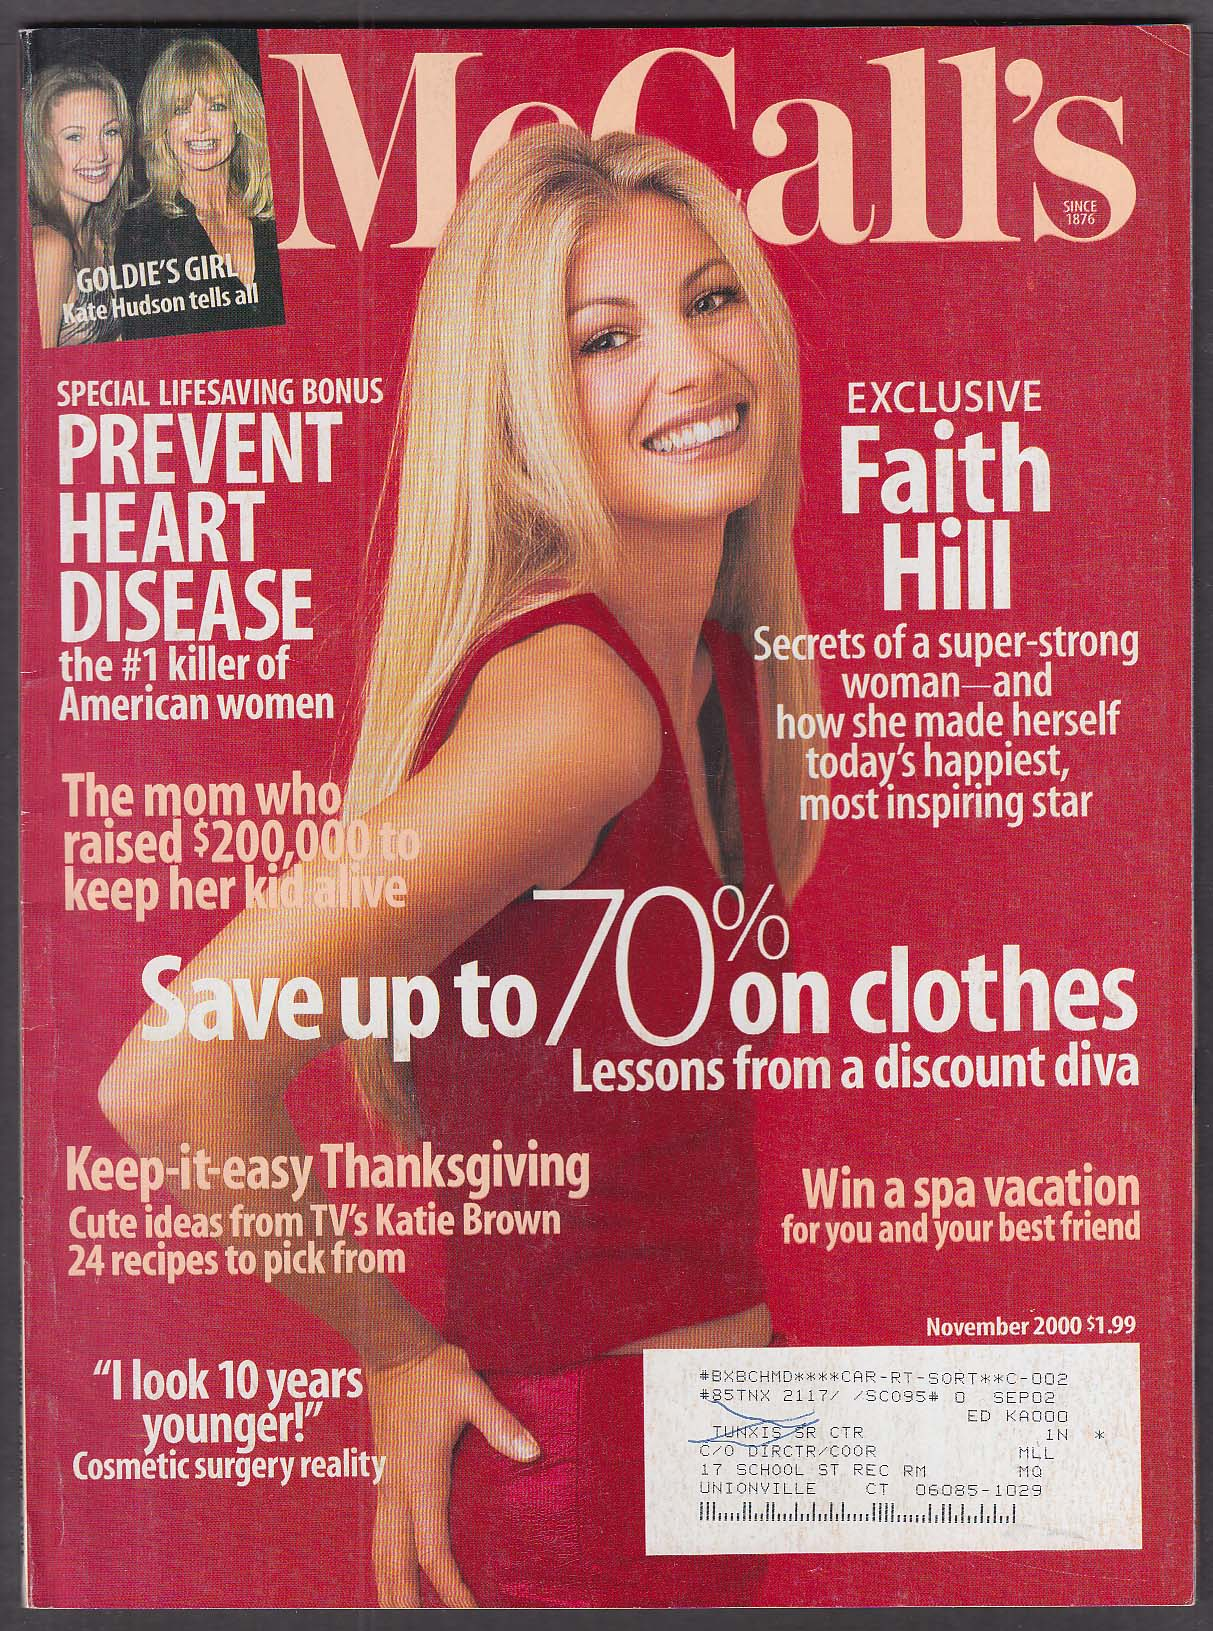 McCALL'S Faith Hill, Kate Hudson 11 2000